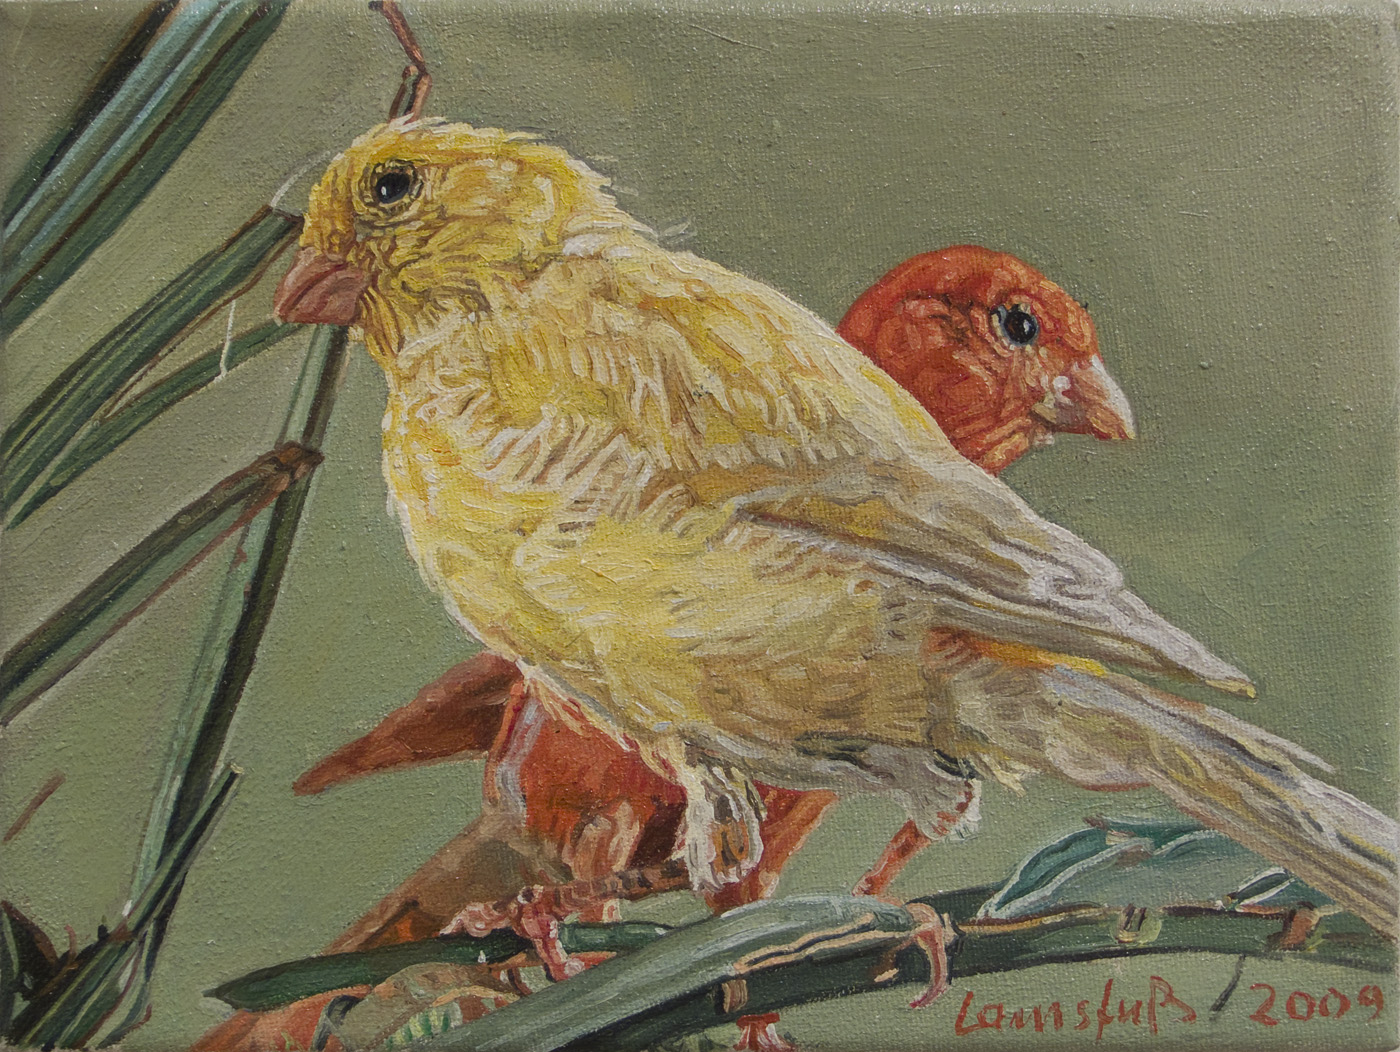 Ulrich Lamsfuss   Birdie I [Das optimale Kanarienfutter. Jede Saat hat ihren Sinn. (Das Tier Nr. 7, Juli 1989)] , 2009 oil on canvas 7.09 x 9.45 inches 18 x 24 cm